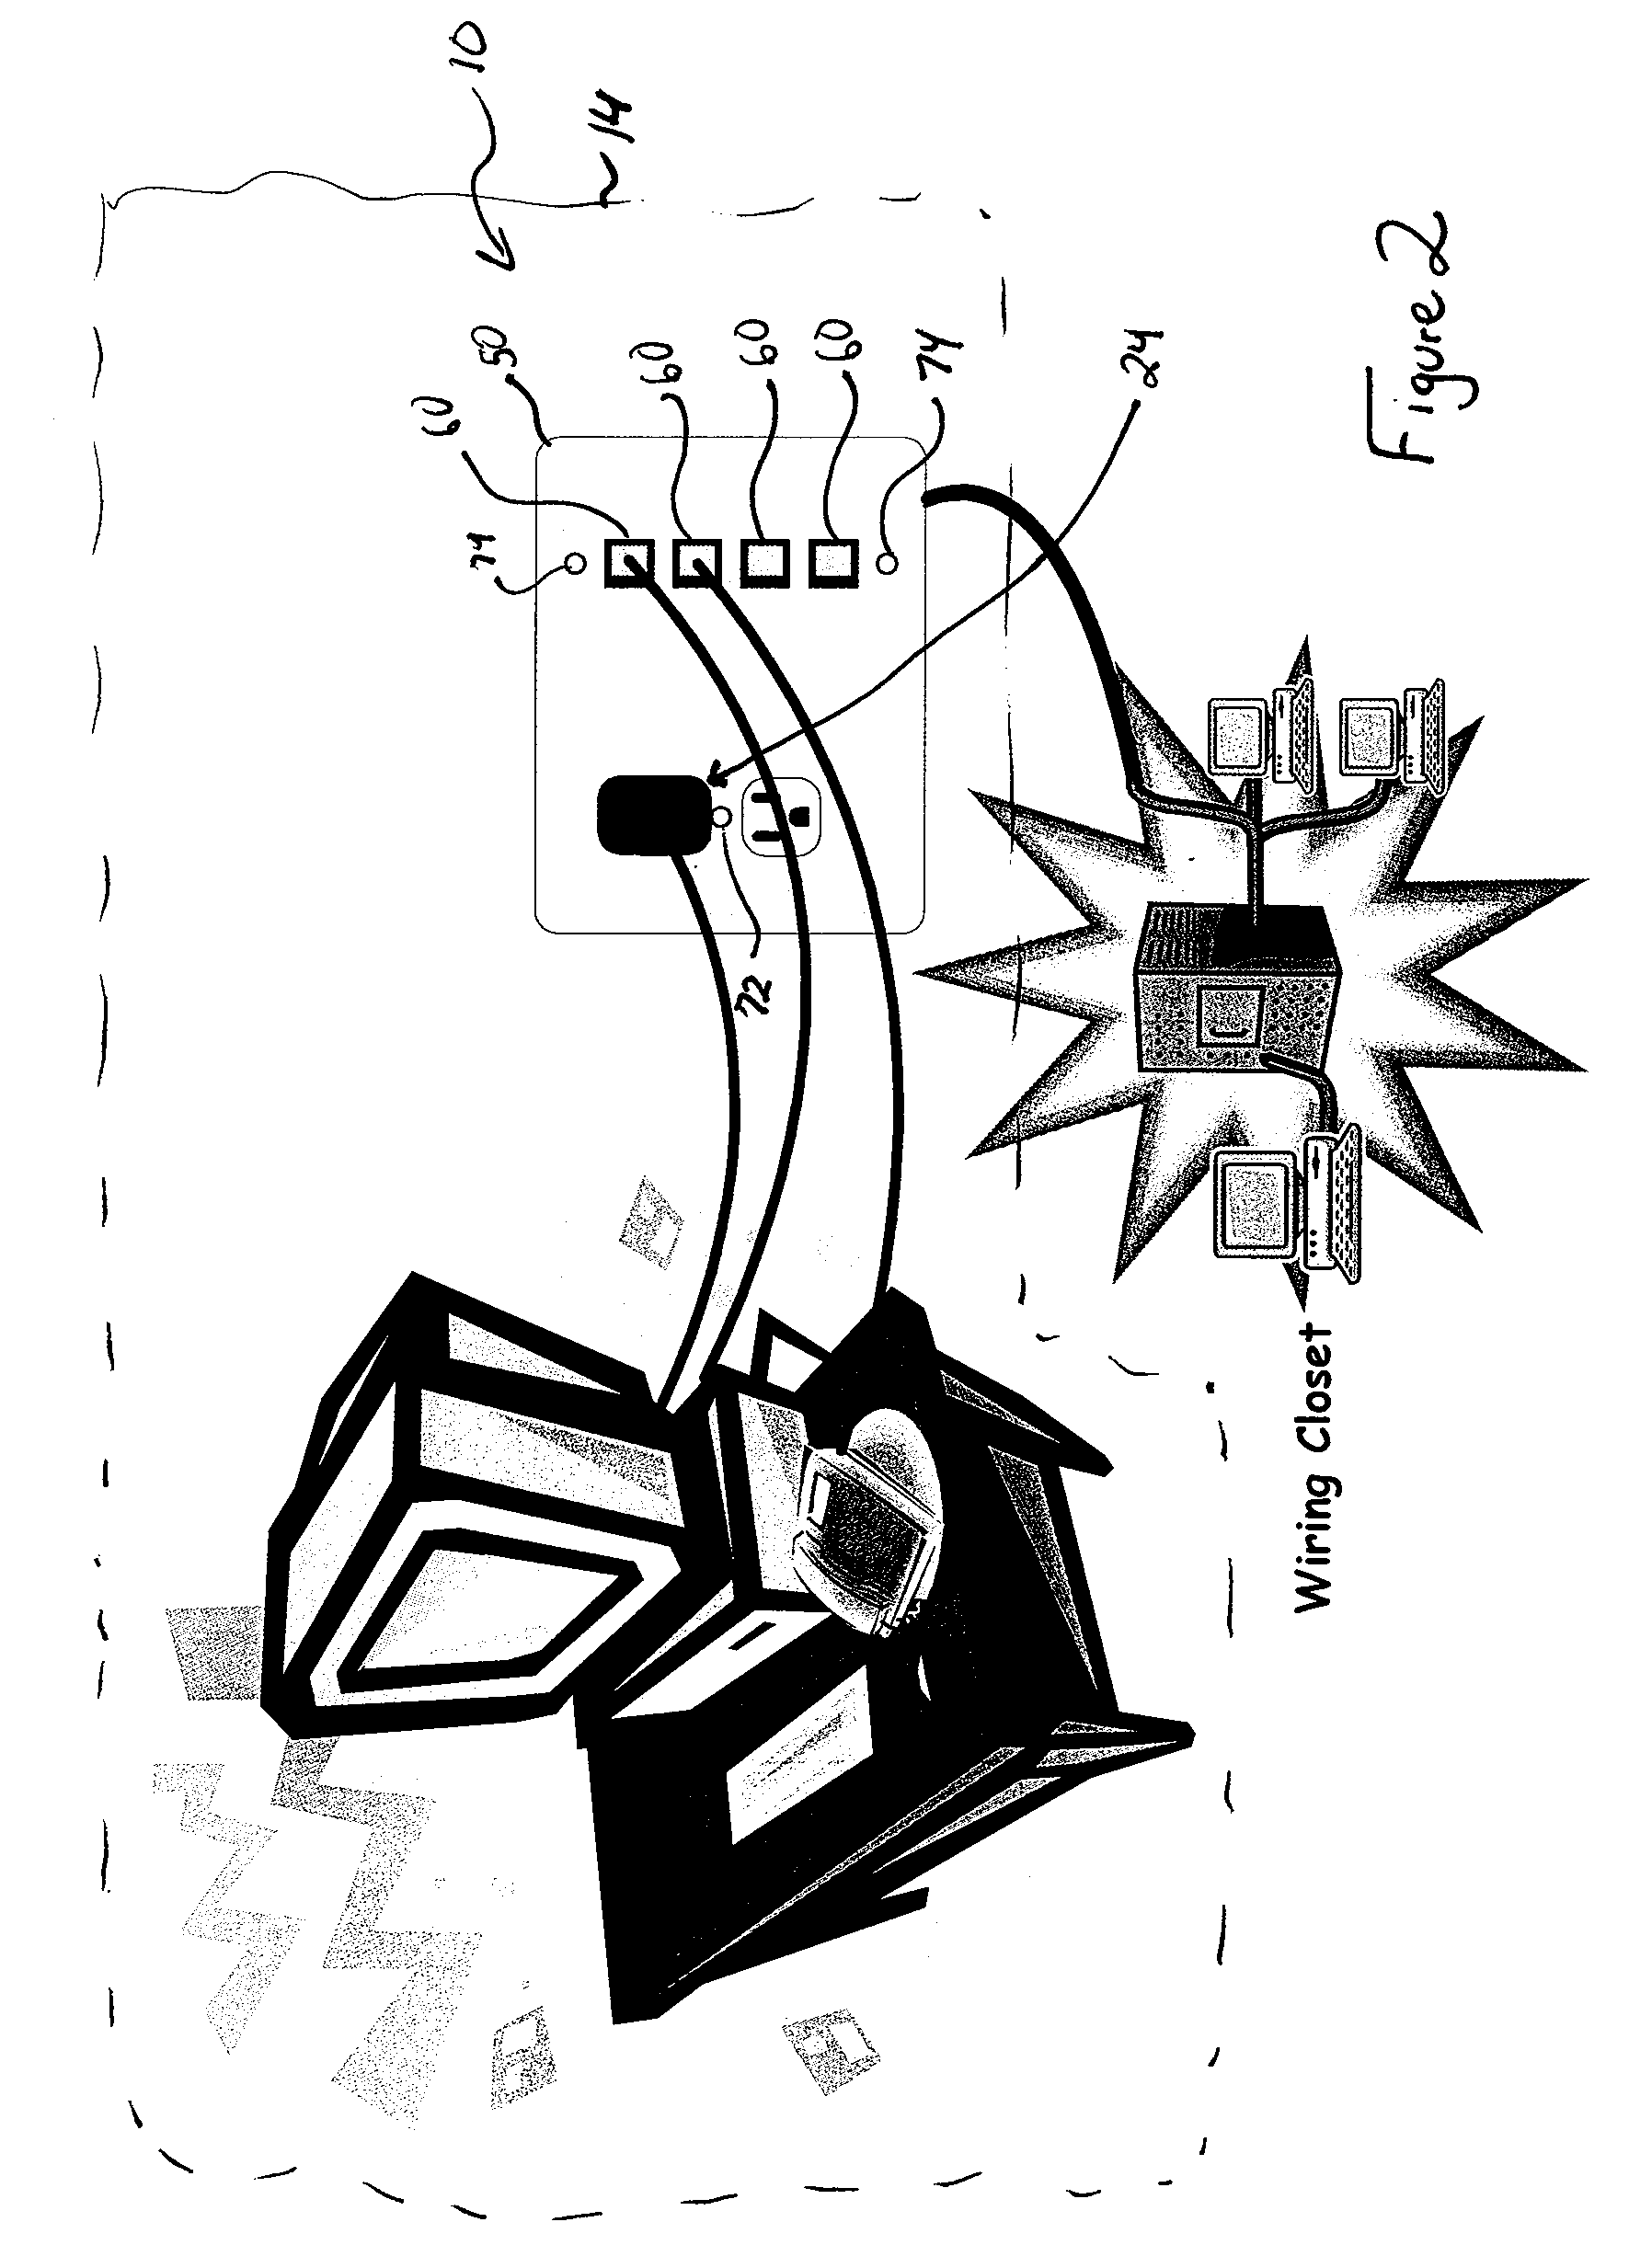 Fsc Outlet Box as well 2 Gang Electrical Box Drawing also Patent Junction Box in addition Wiring Diagram L And N additionally US7378591. on 2 gang electrical box drawing